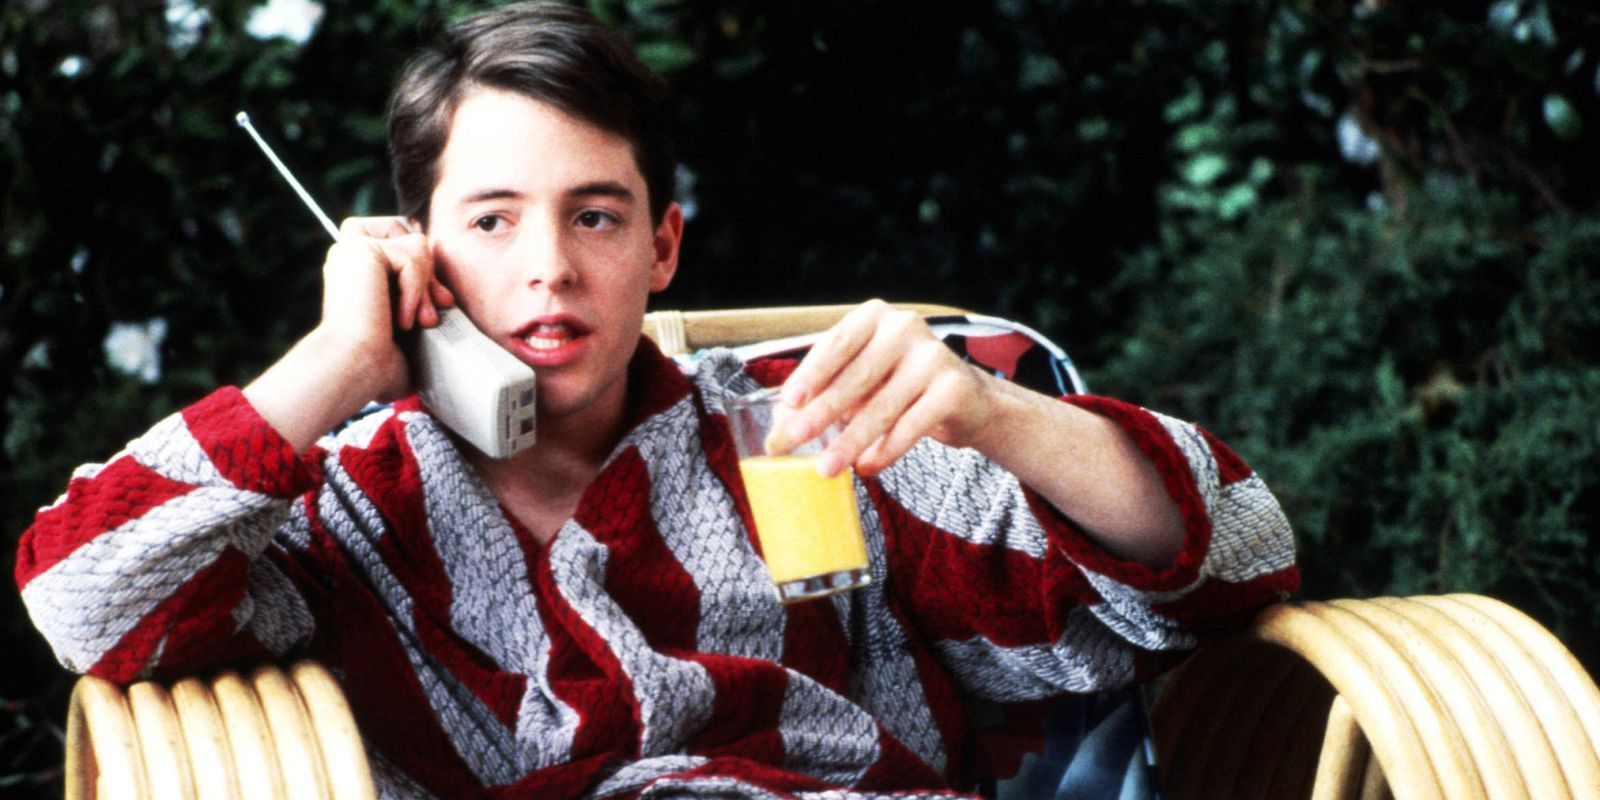 5 Things You Missed in 'Ferris Bueller's Day Off'